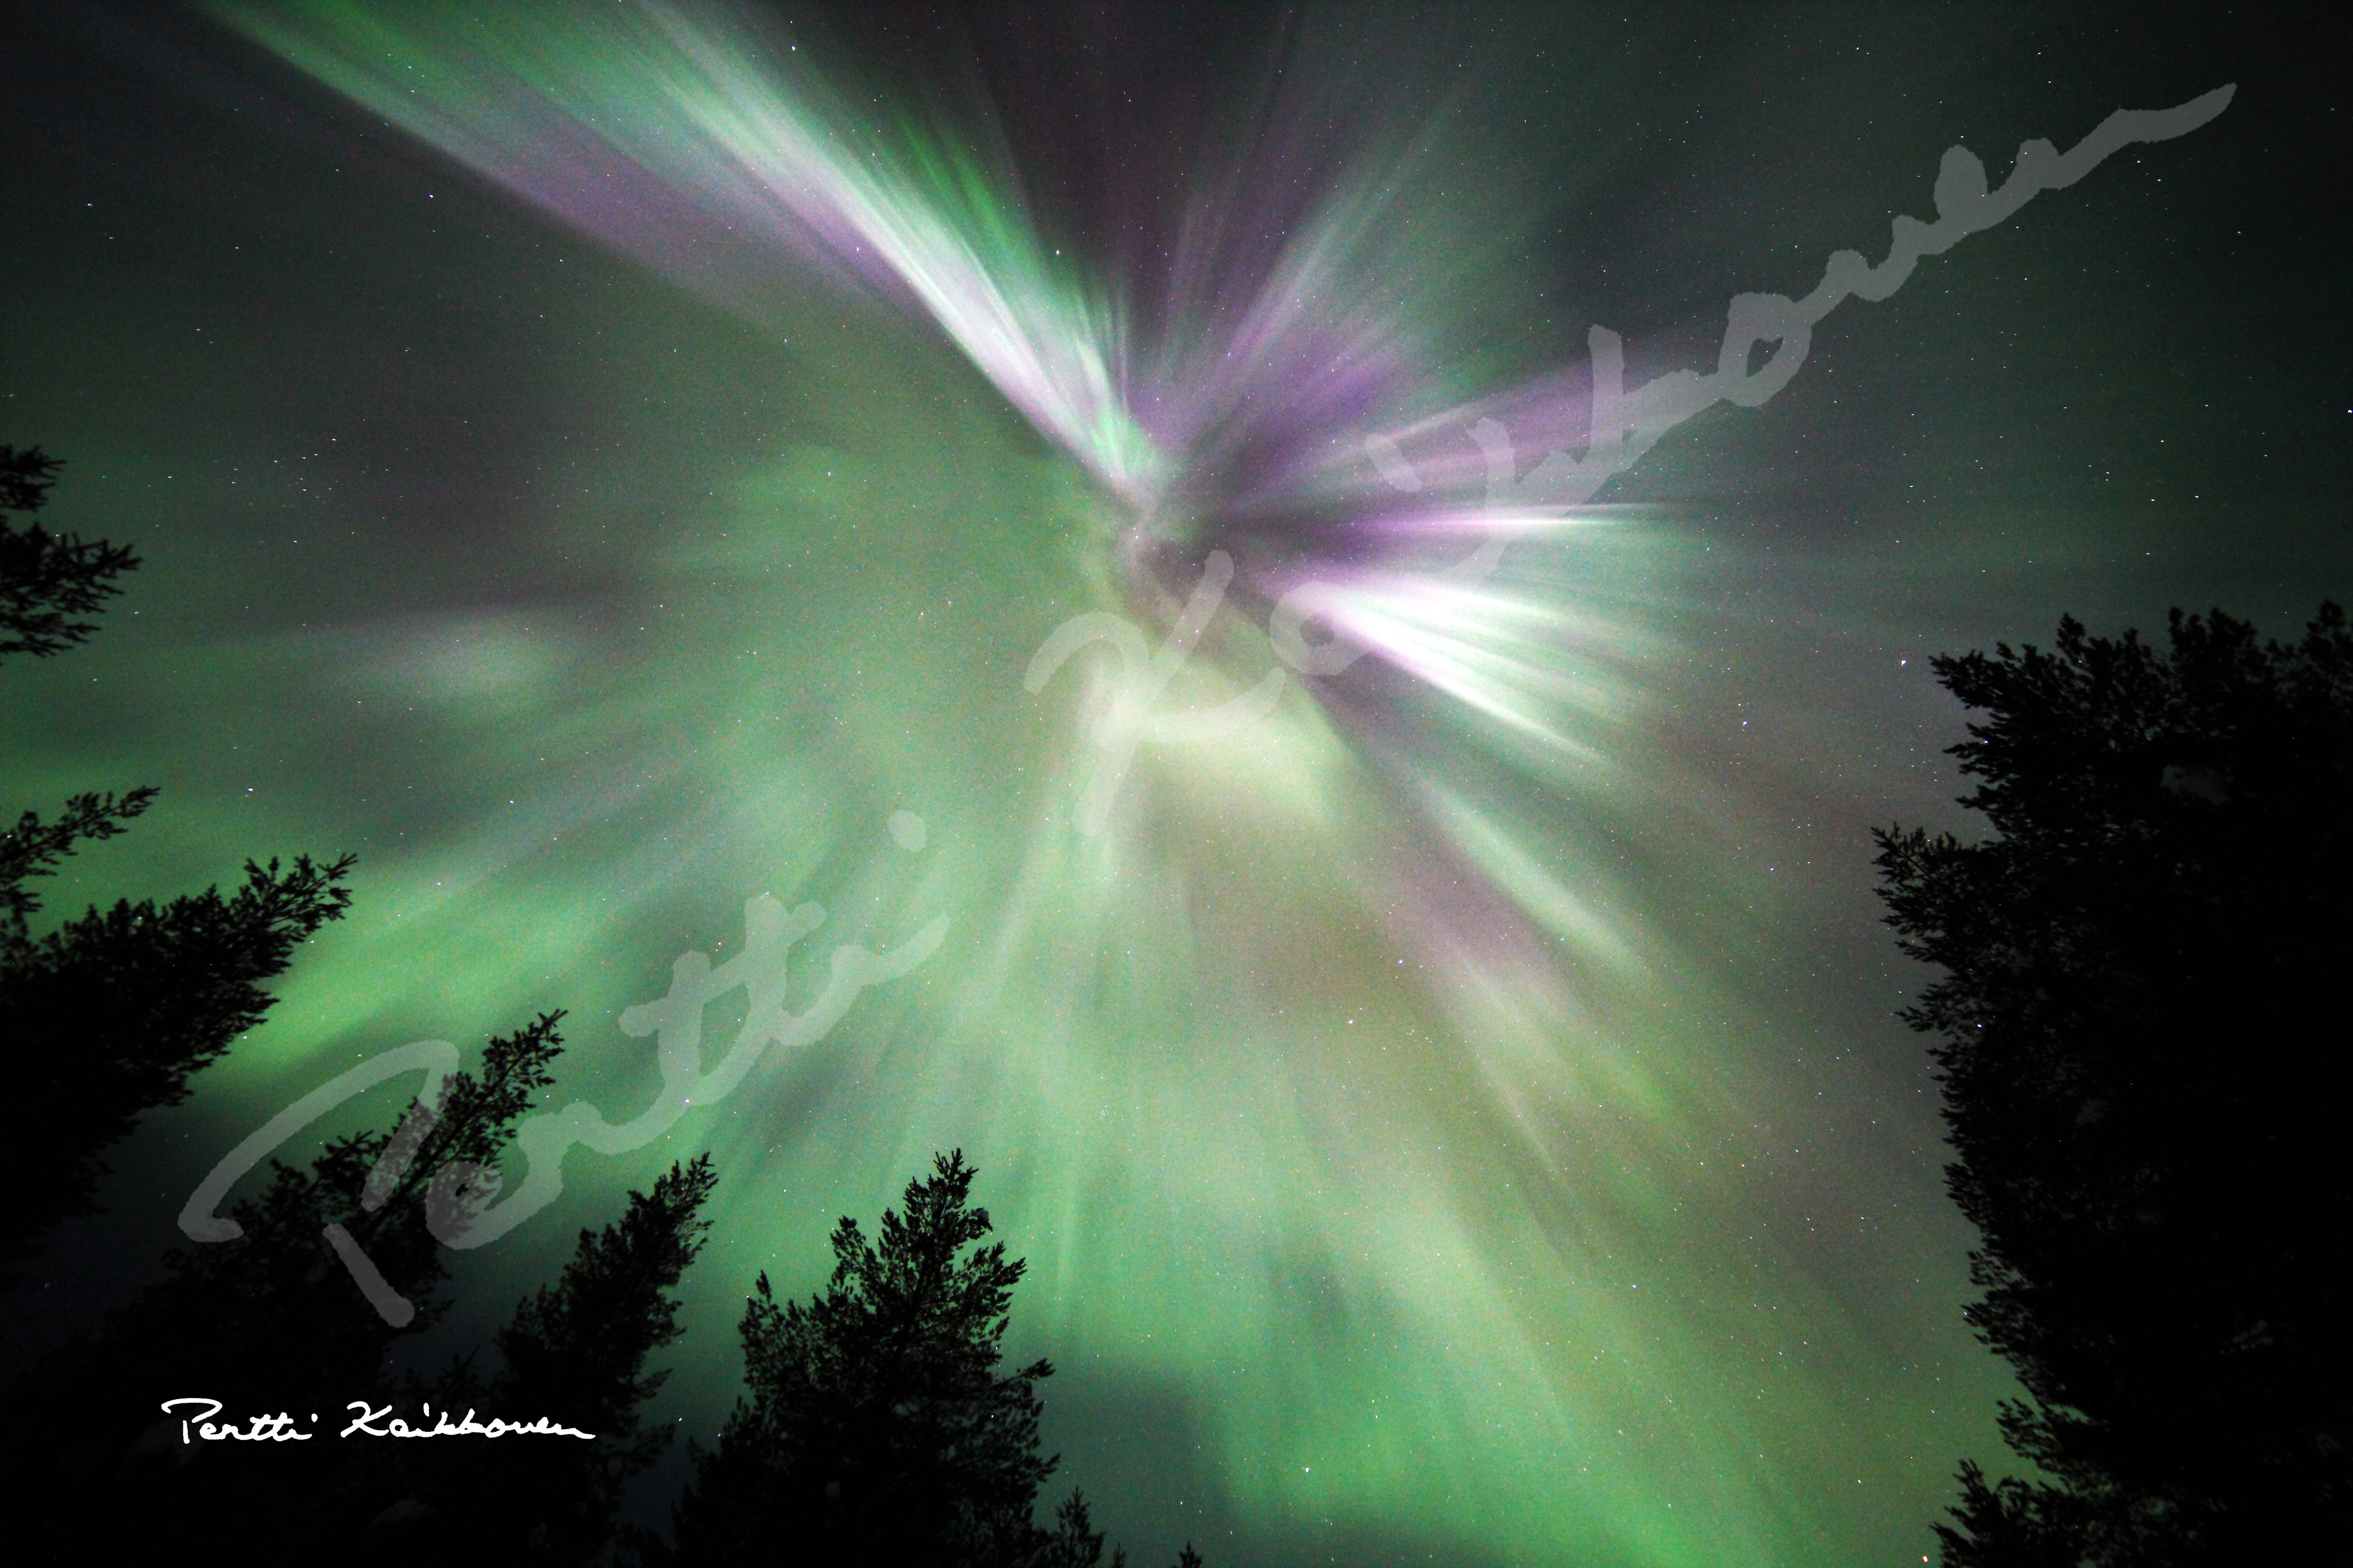 02. Revontulikruunu - Aurora Borealis Crown, kuvatiedostot - digital picture files